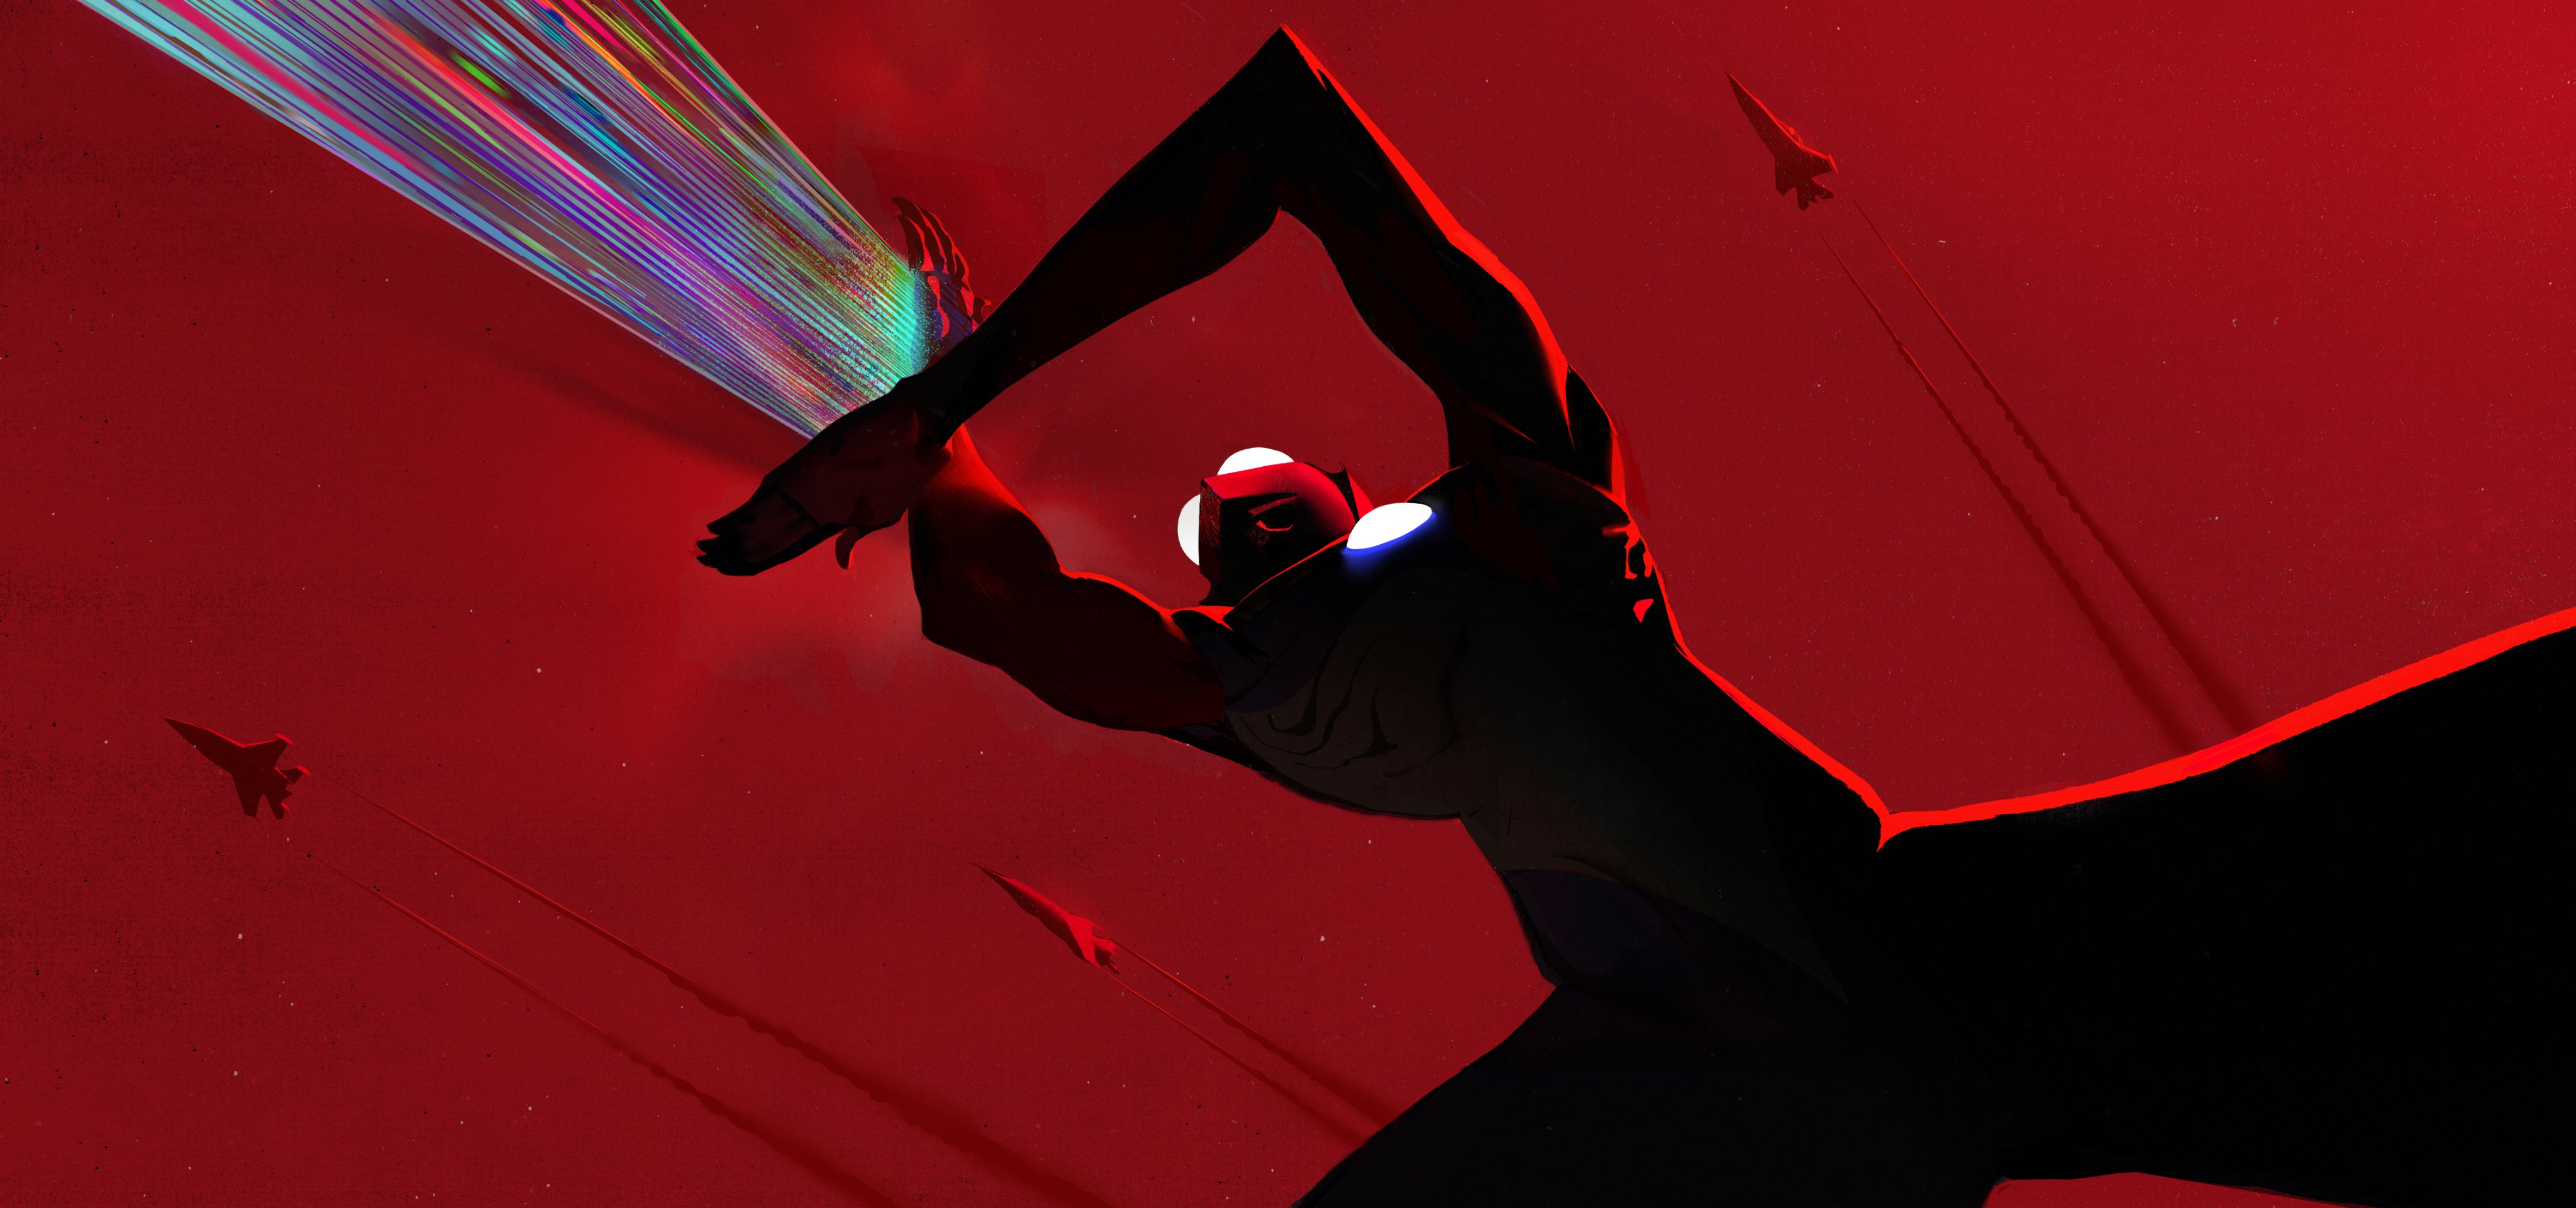 A promotional image for the upcoming Netflix 3DCG Ultraman film, featuring Ultraman performing his Ultra Beam attack against the backdrop of a red sky with fighter jets soaring through it.